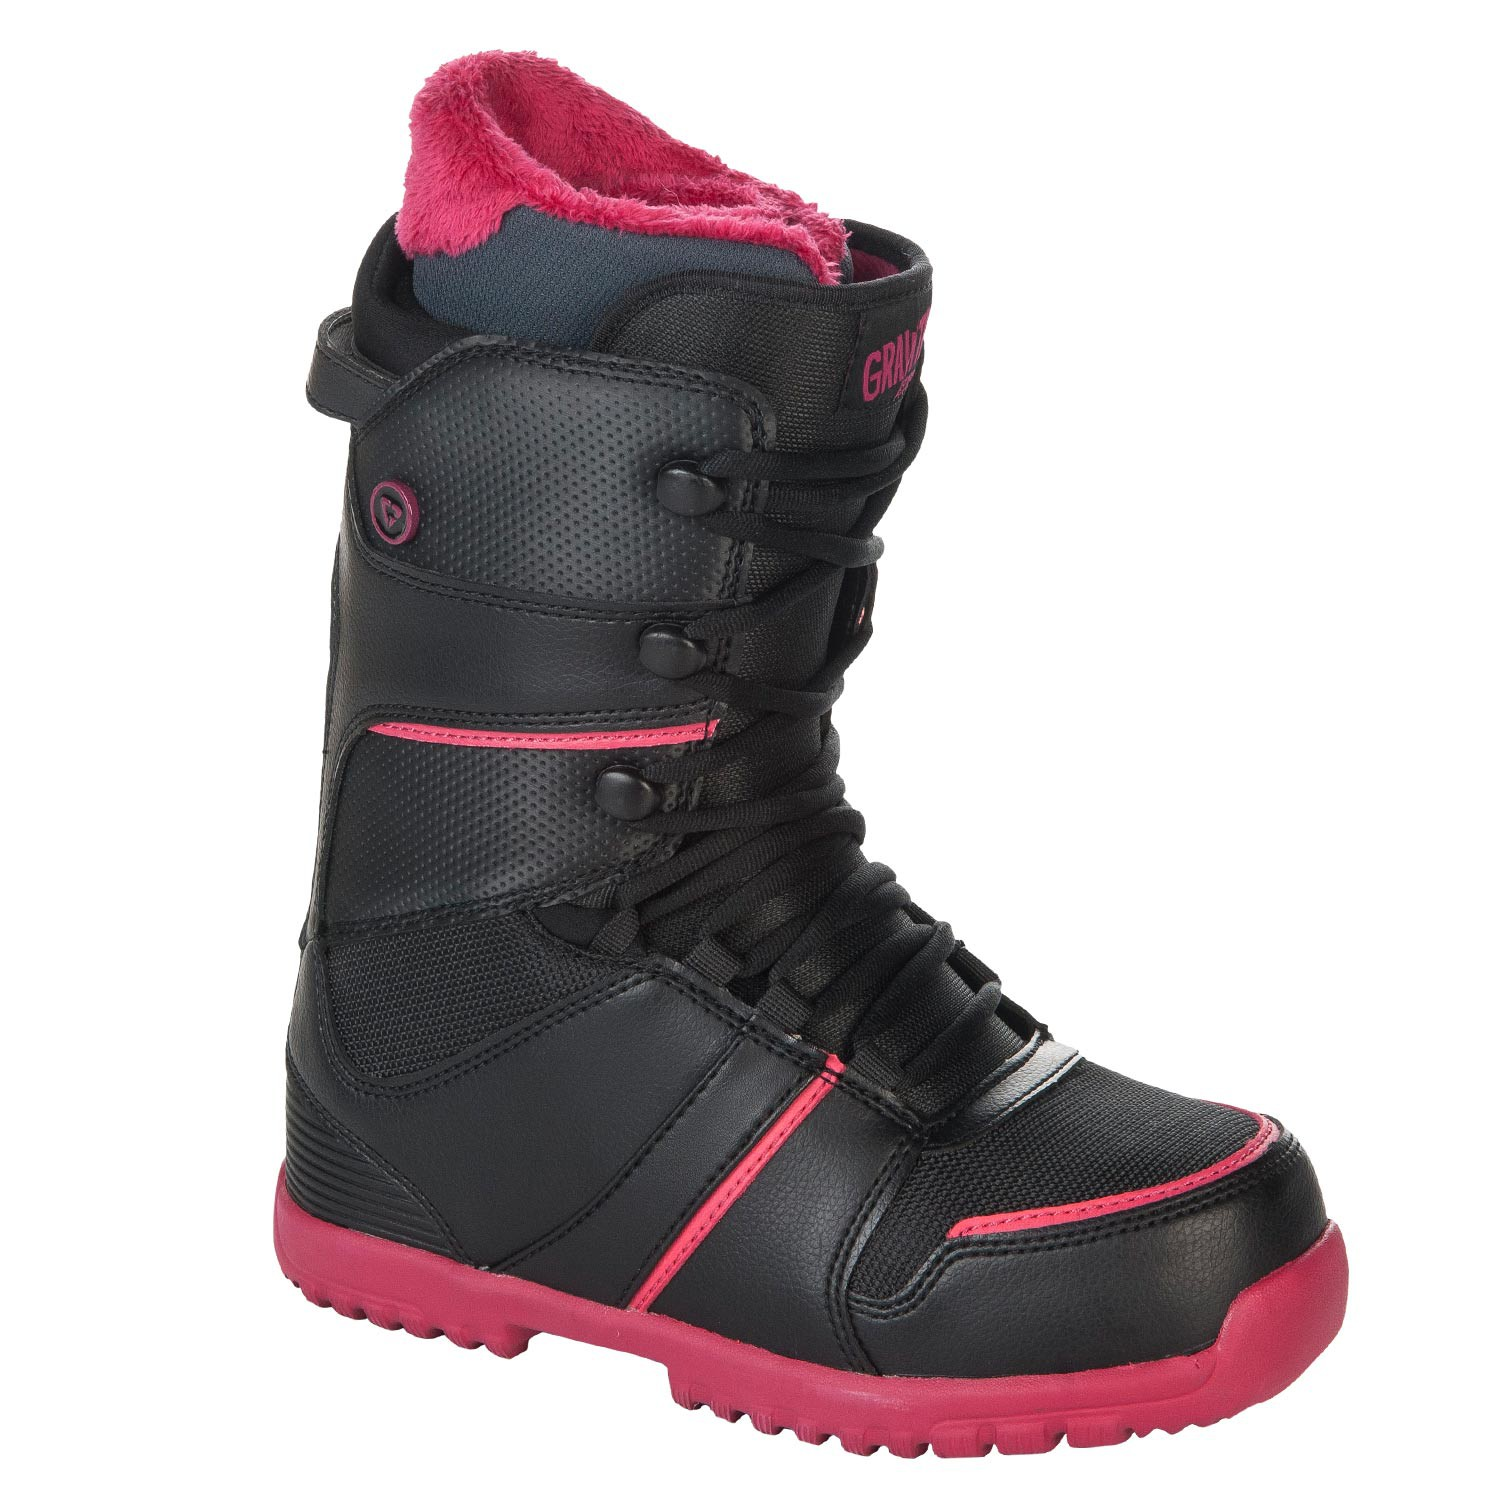 Gravity SAGE black/pink vel. 6